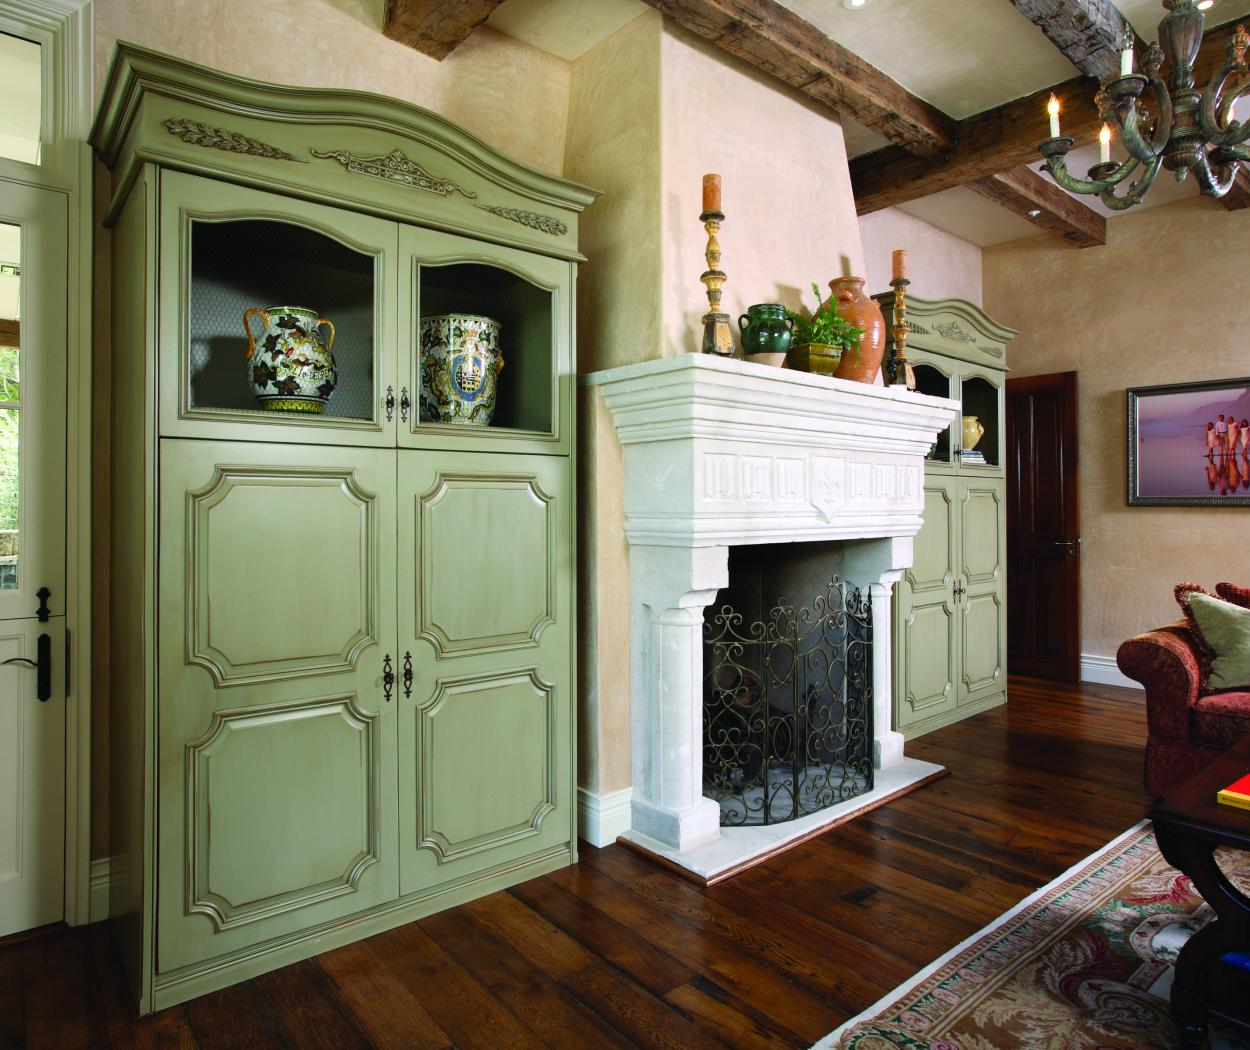 Two Antique Light Green Family Room Built-Ins with Glass Doors and Decorative Molding